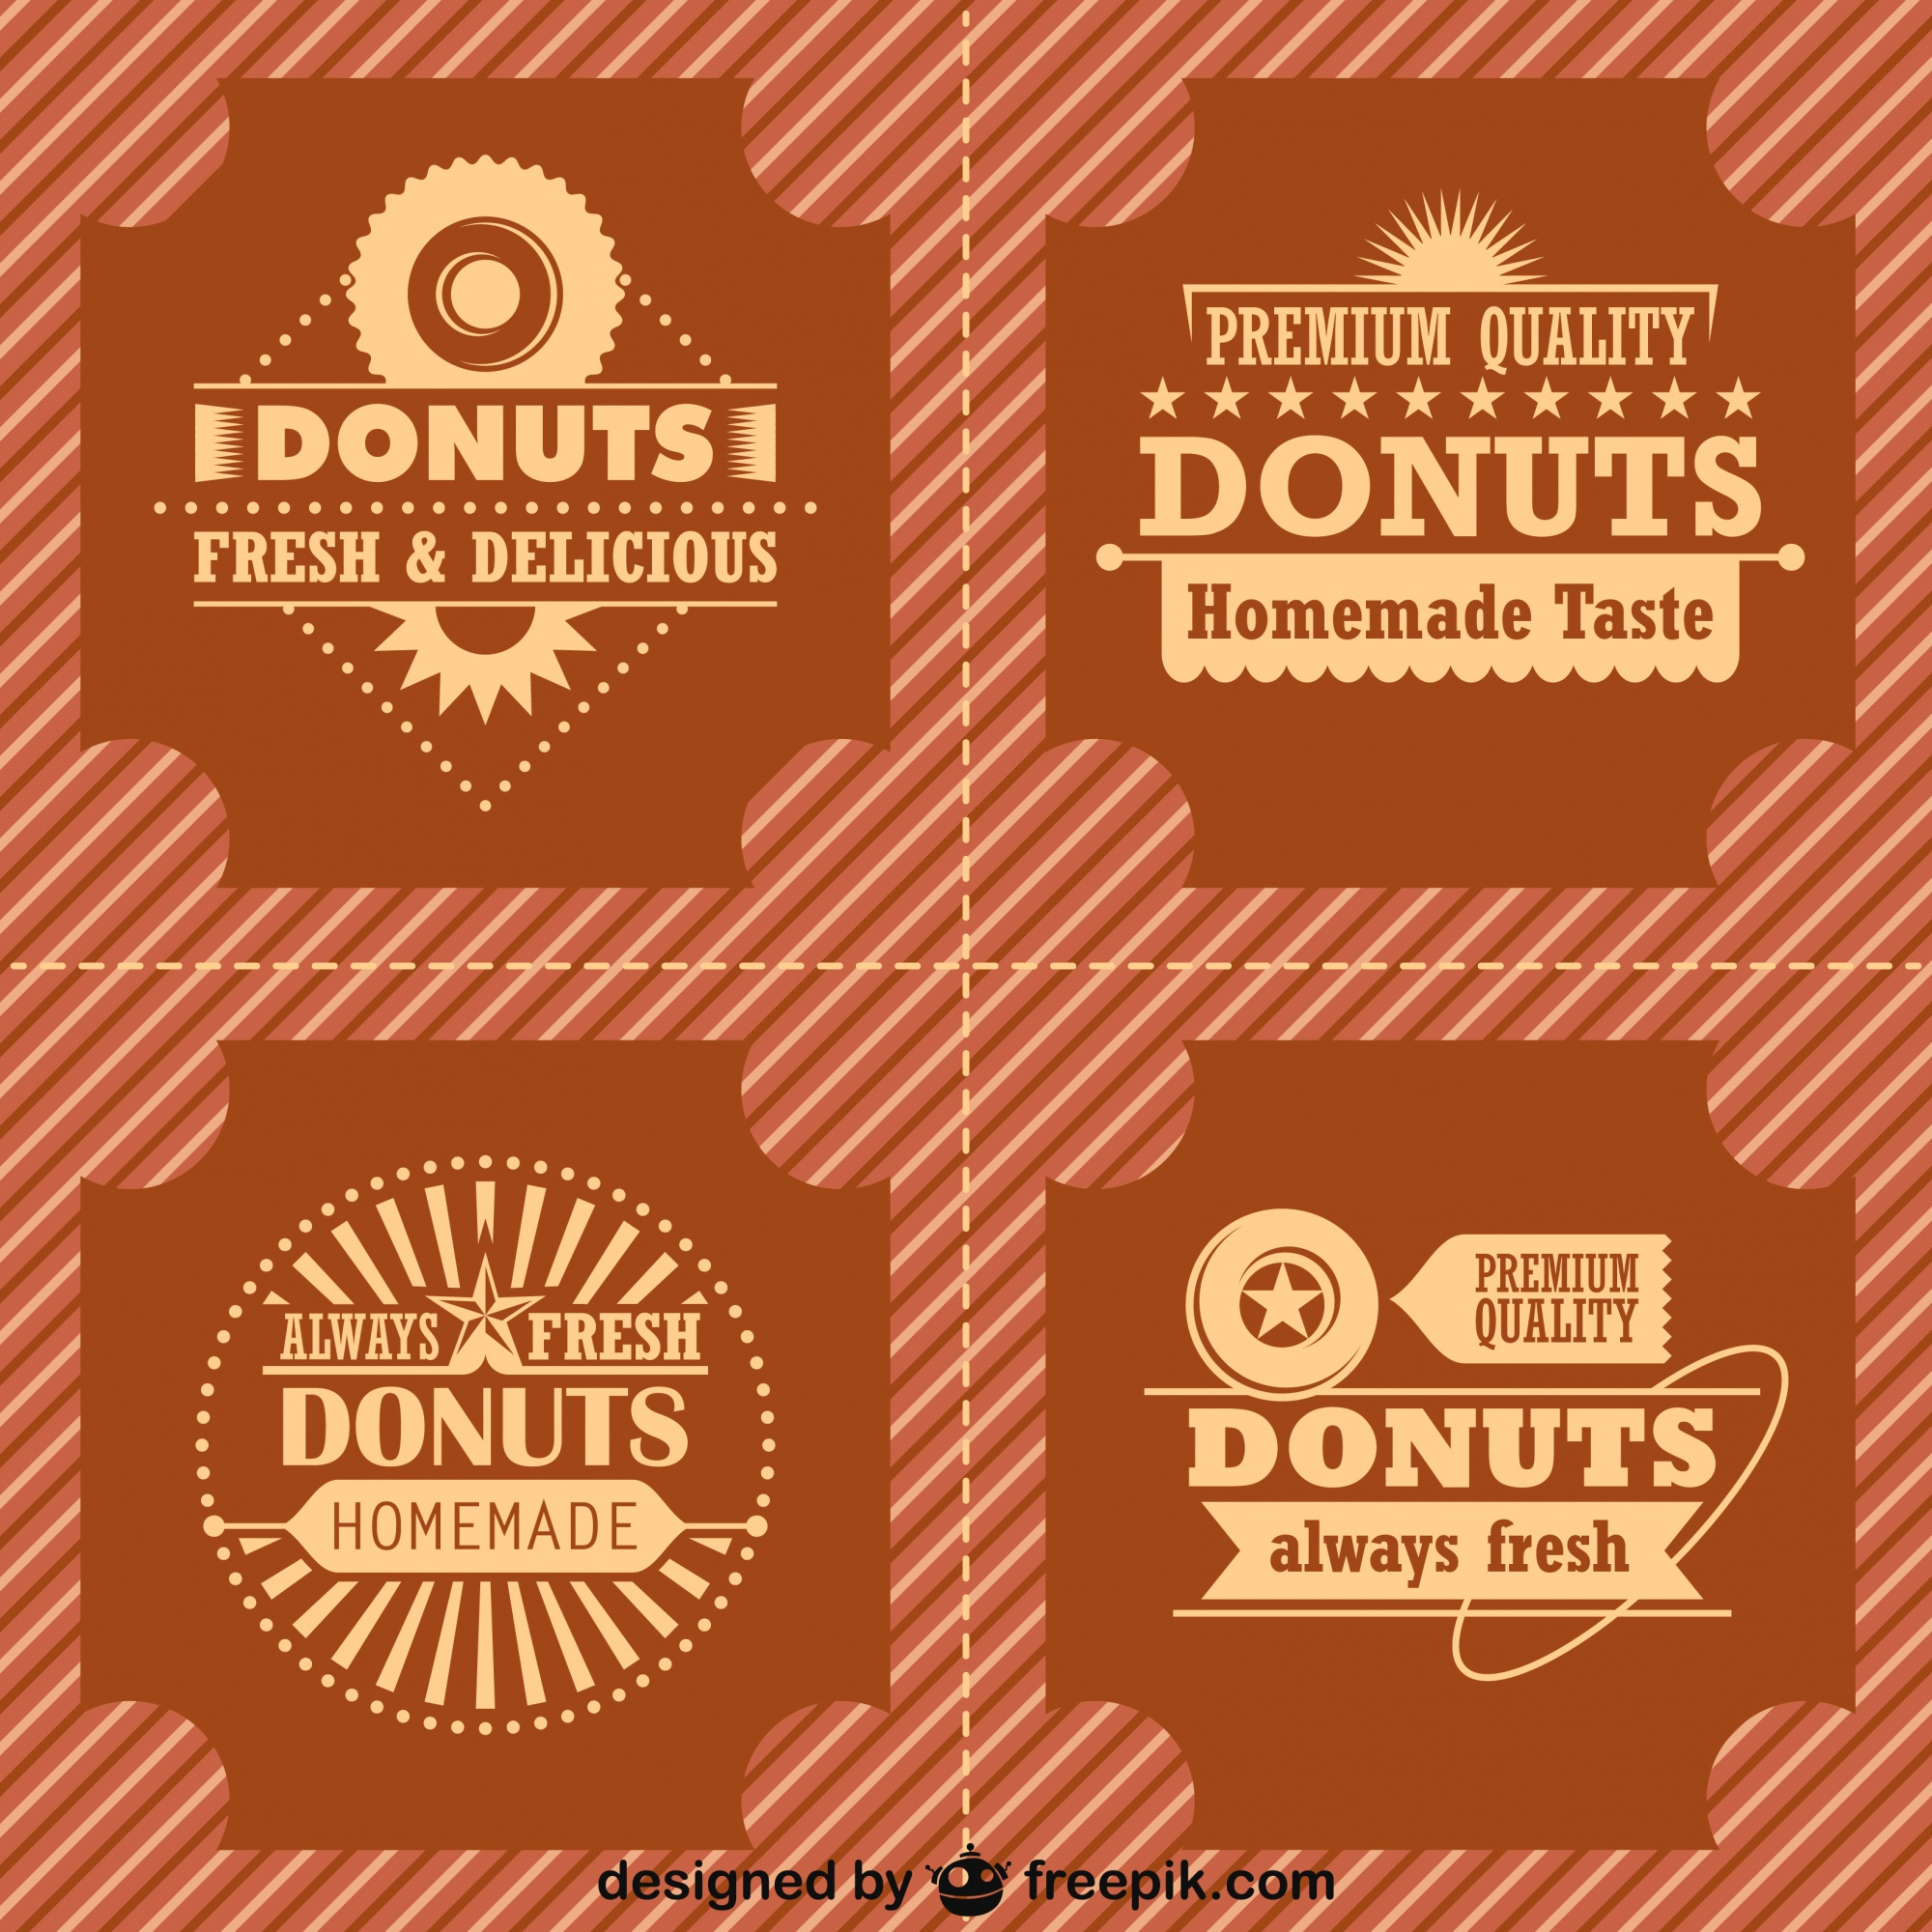 Etiquetas para marketing de donas estilo retro